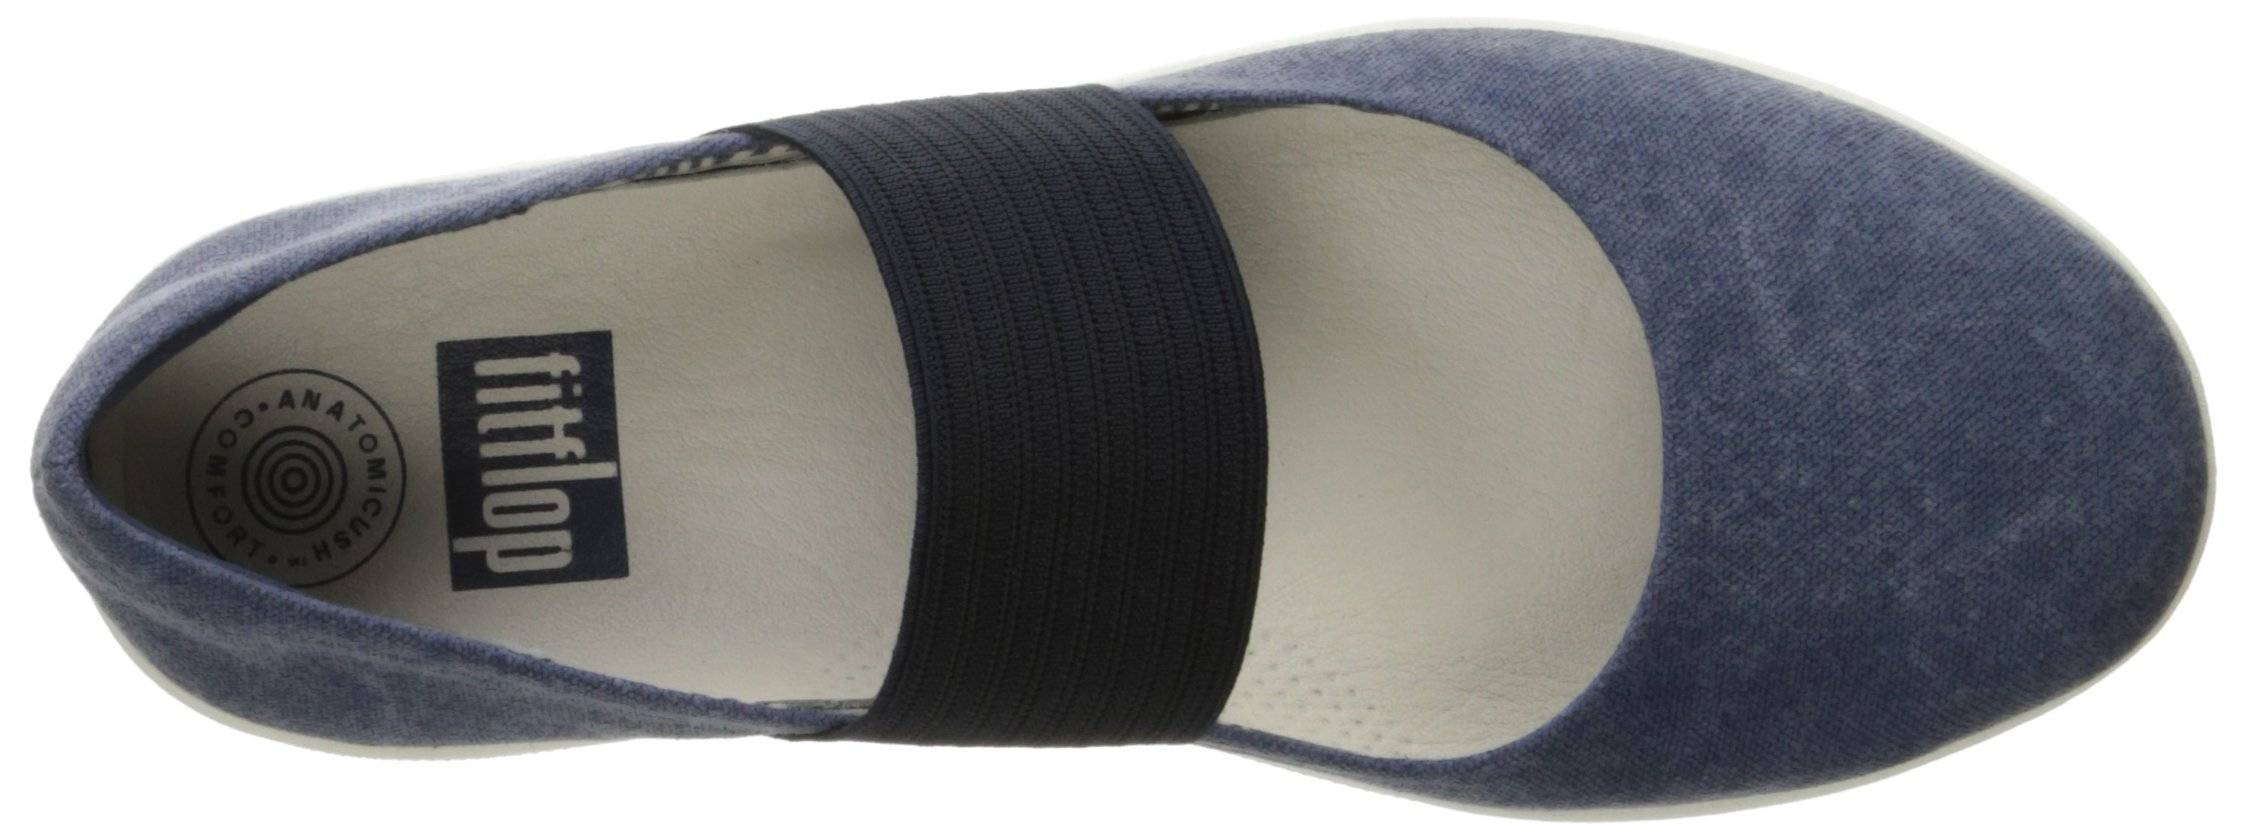 FitFlop Women's F-Sporty Mary Jane Flat, Midnight Navy, 6.5 M US by FitFlop (Image #8)